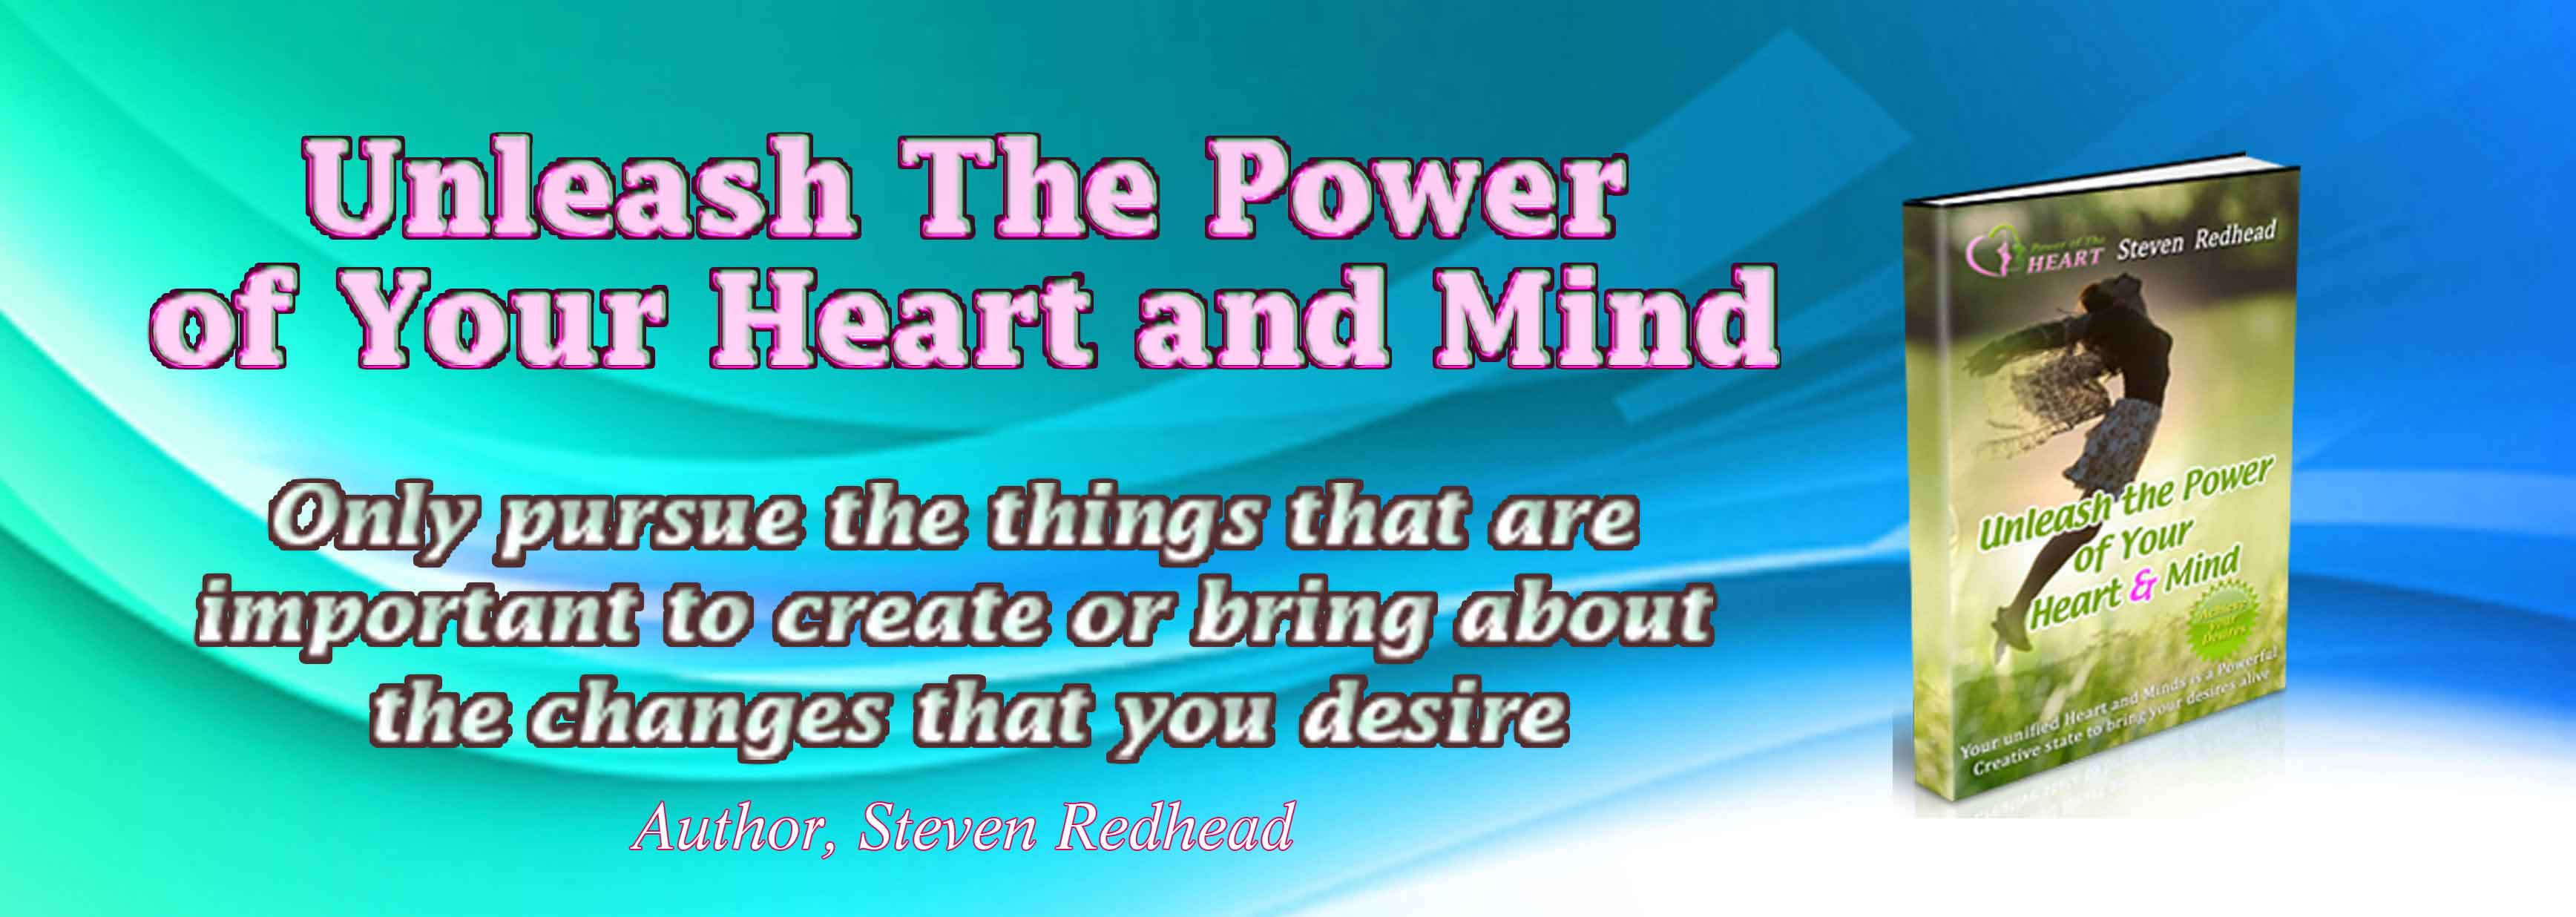 Unleash The Power of Your Heart and Mind book Quote - Desires